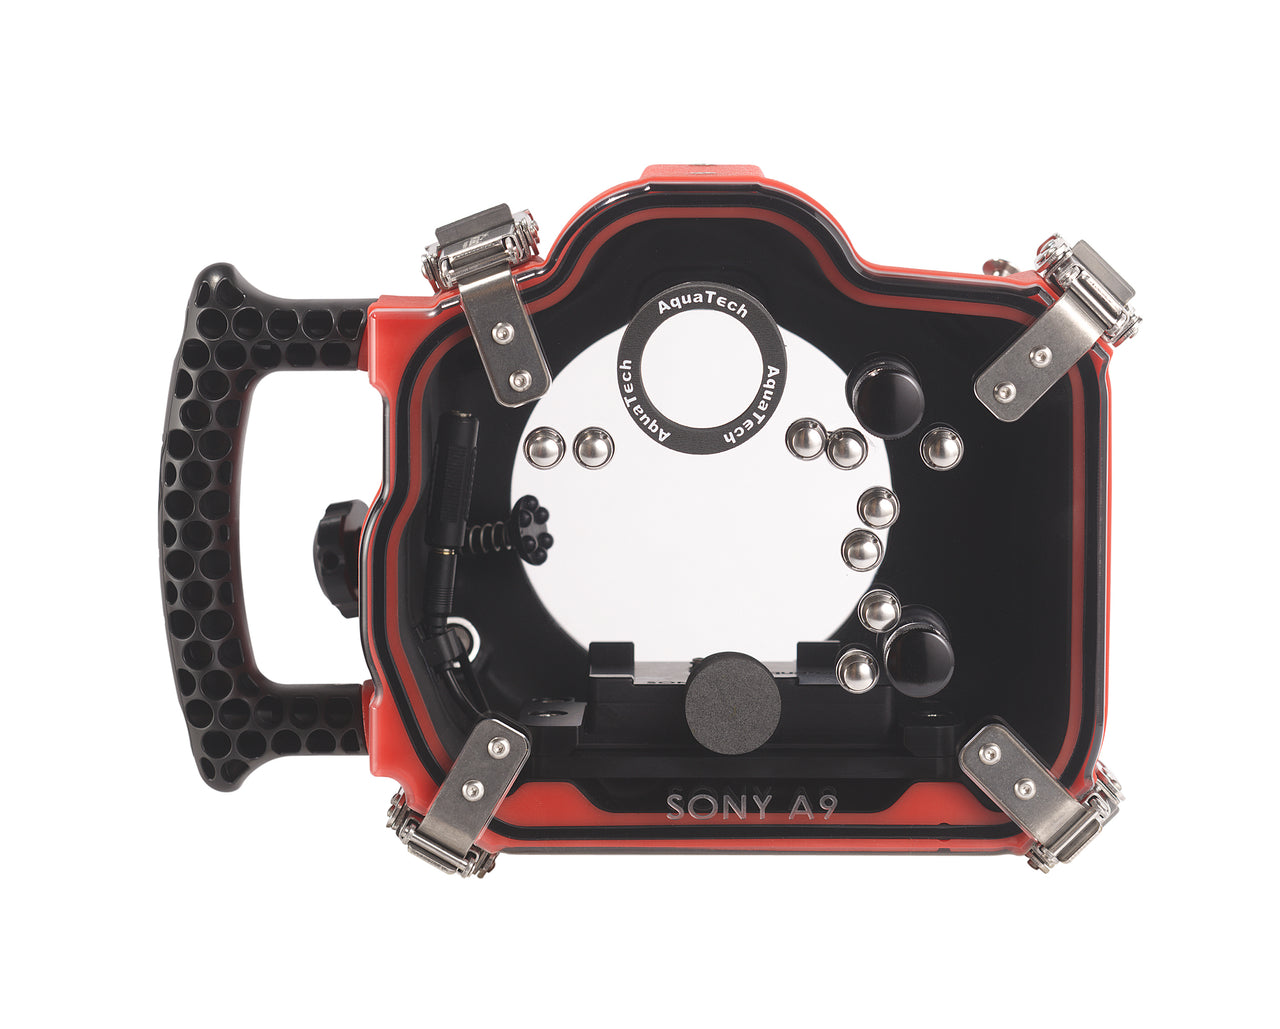 Sony camera water housing conversion kit aquatech u2013 aquatech